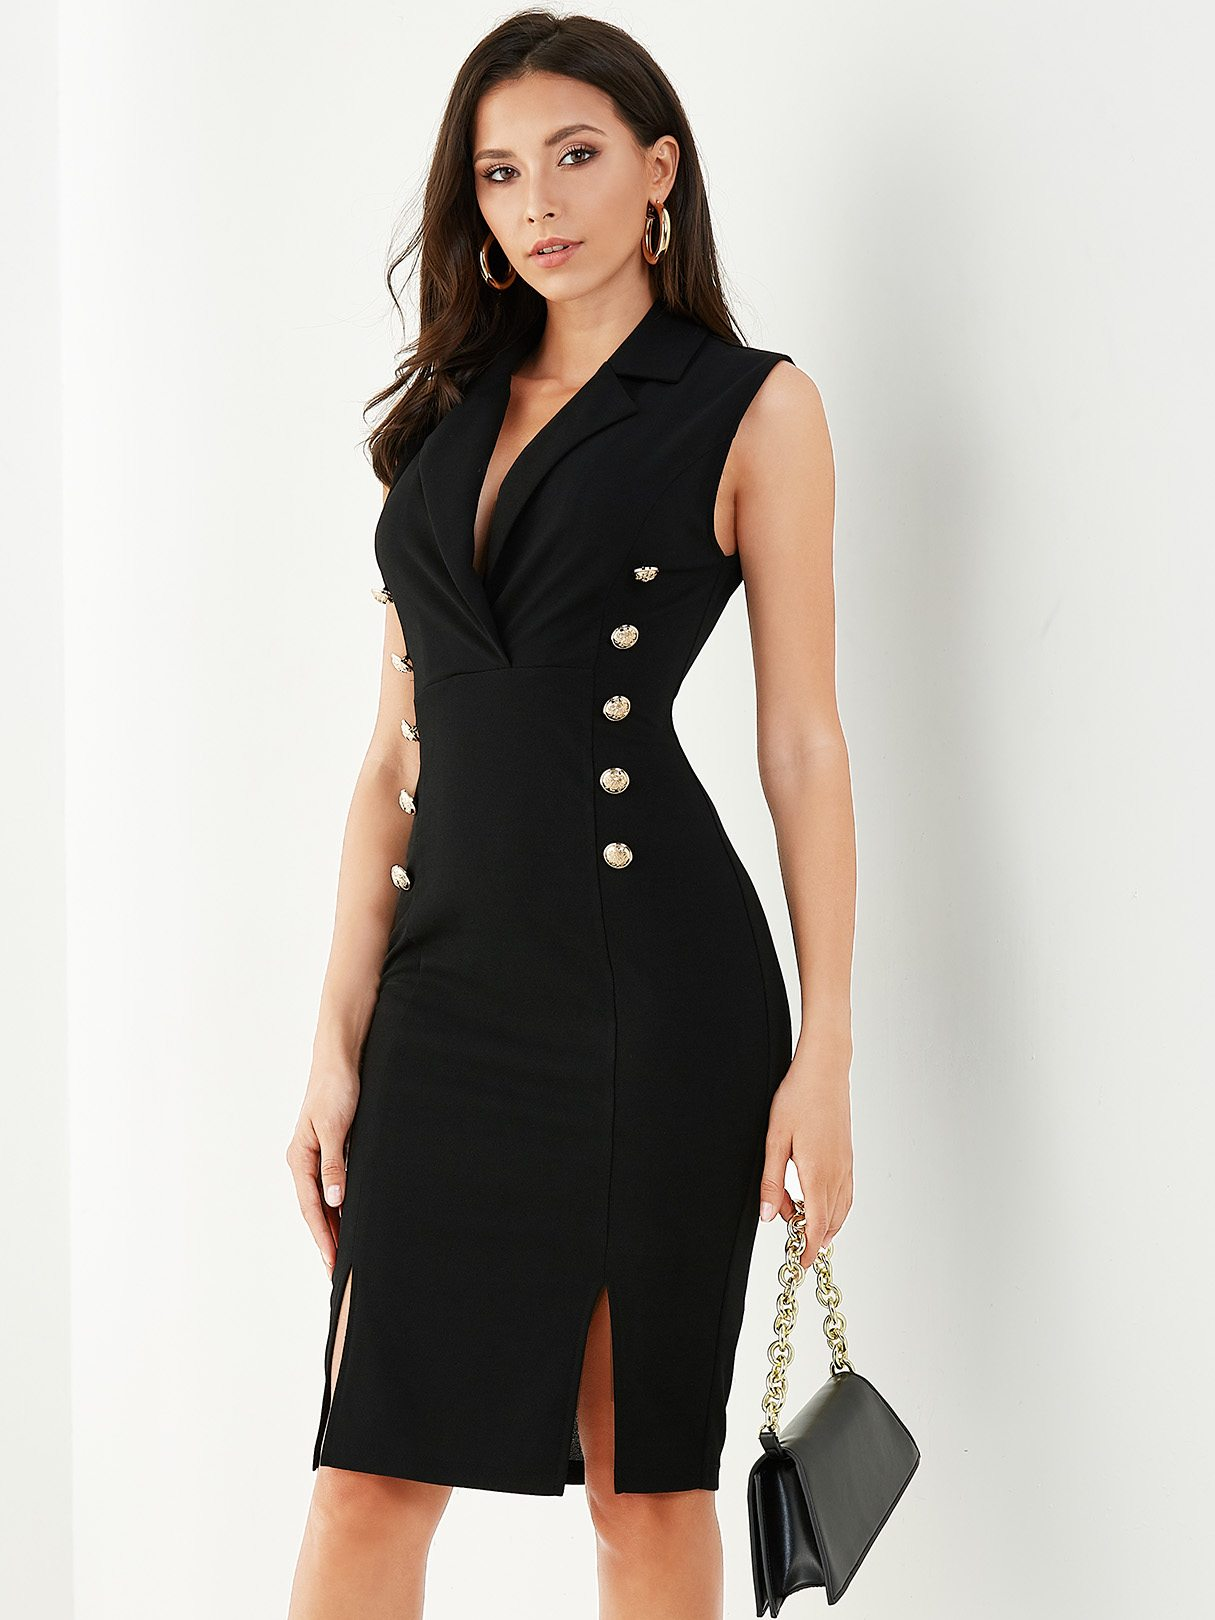 Black Button Design Lapel Collar Sleeveless Dress